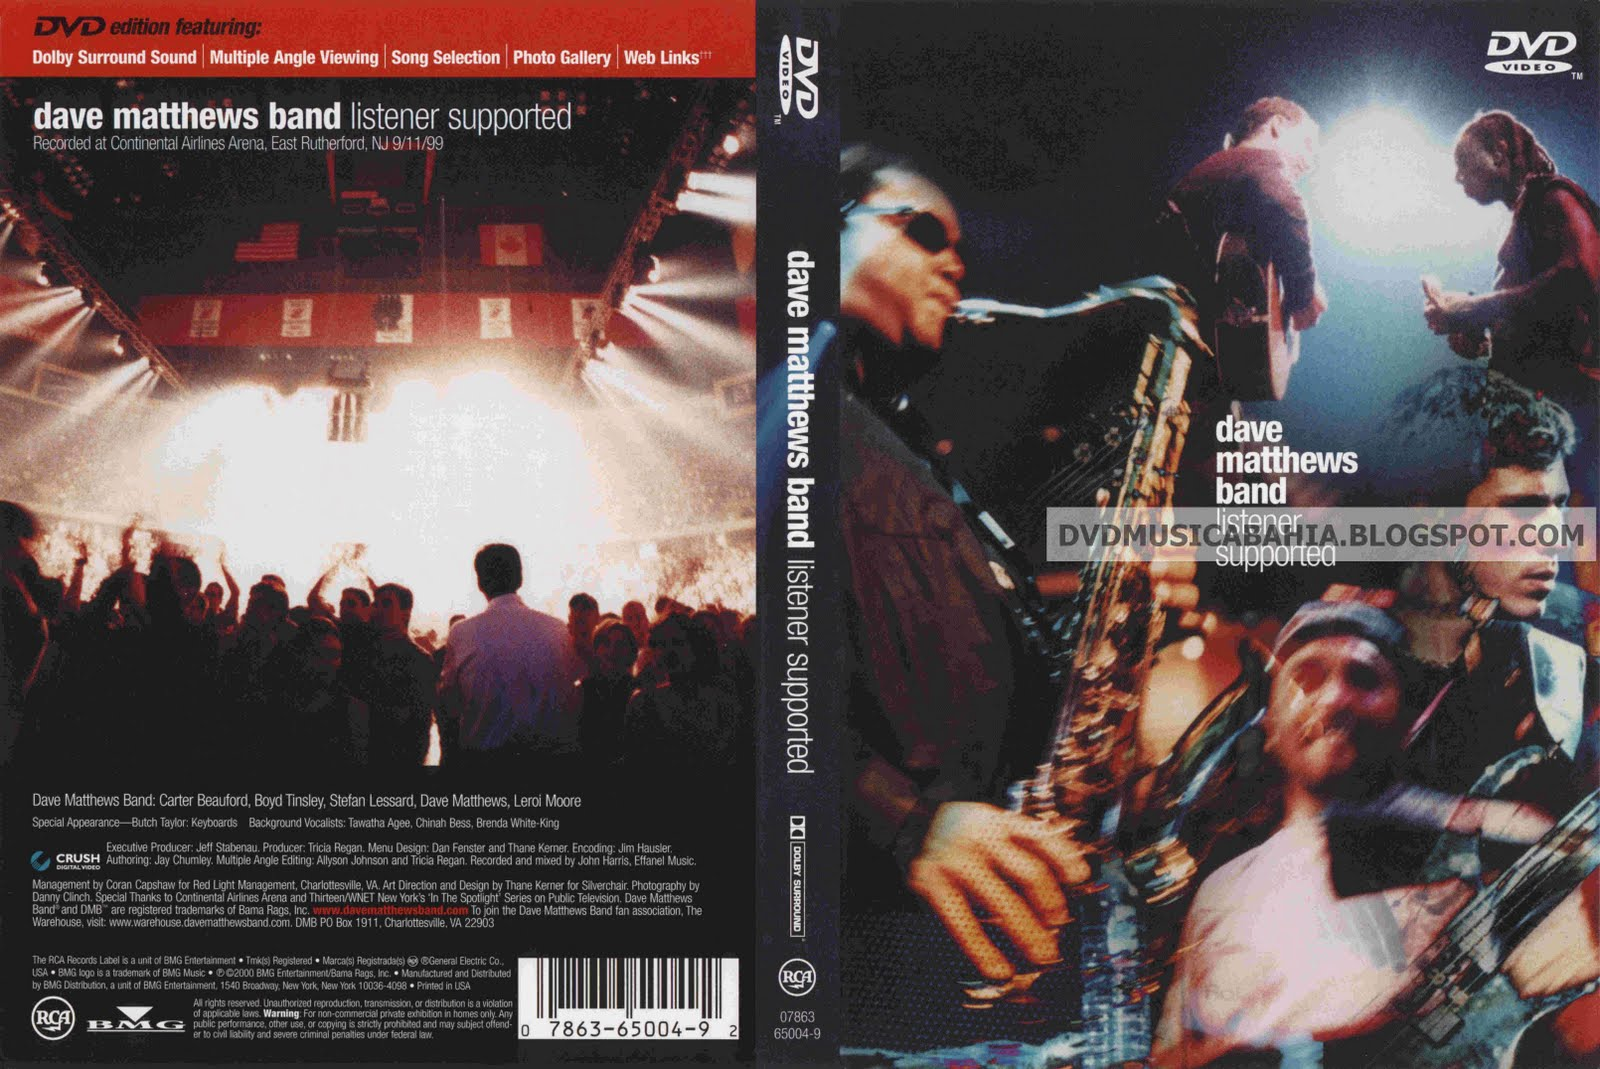 an introduction to the history of dave matthews band Dave matthews band (dmb) is a unique, musically gifted band its combination of sounds of folk, jazz, rock, world beat, and reggae give it its originality and musicality that extends the bounds of music the five members of the band: dave matthews, boyd tinsley, leroi moore, stefan lessard, and.